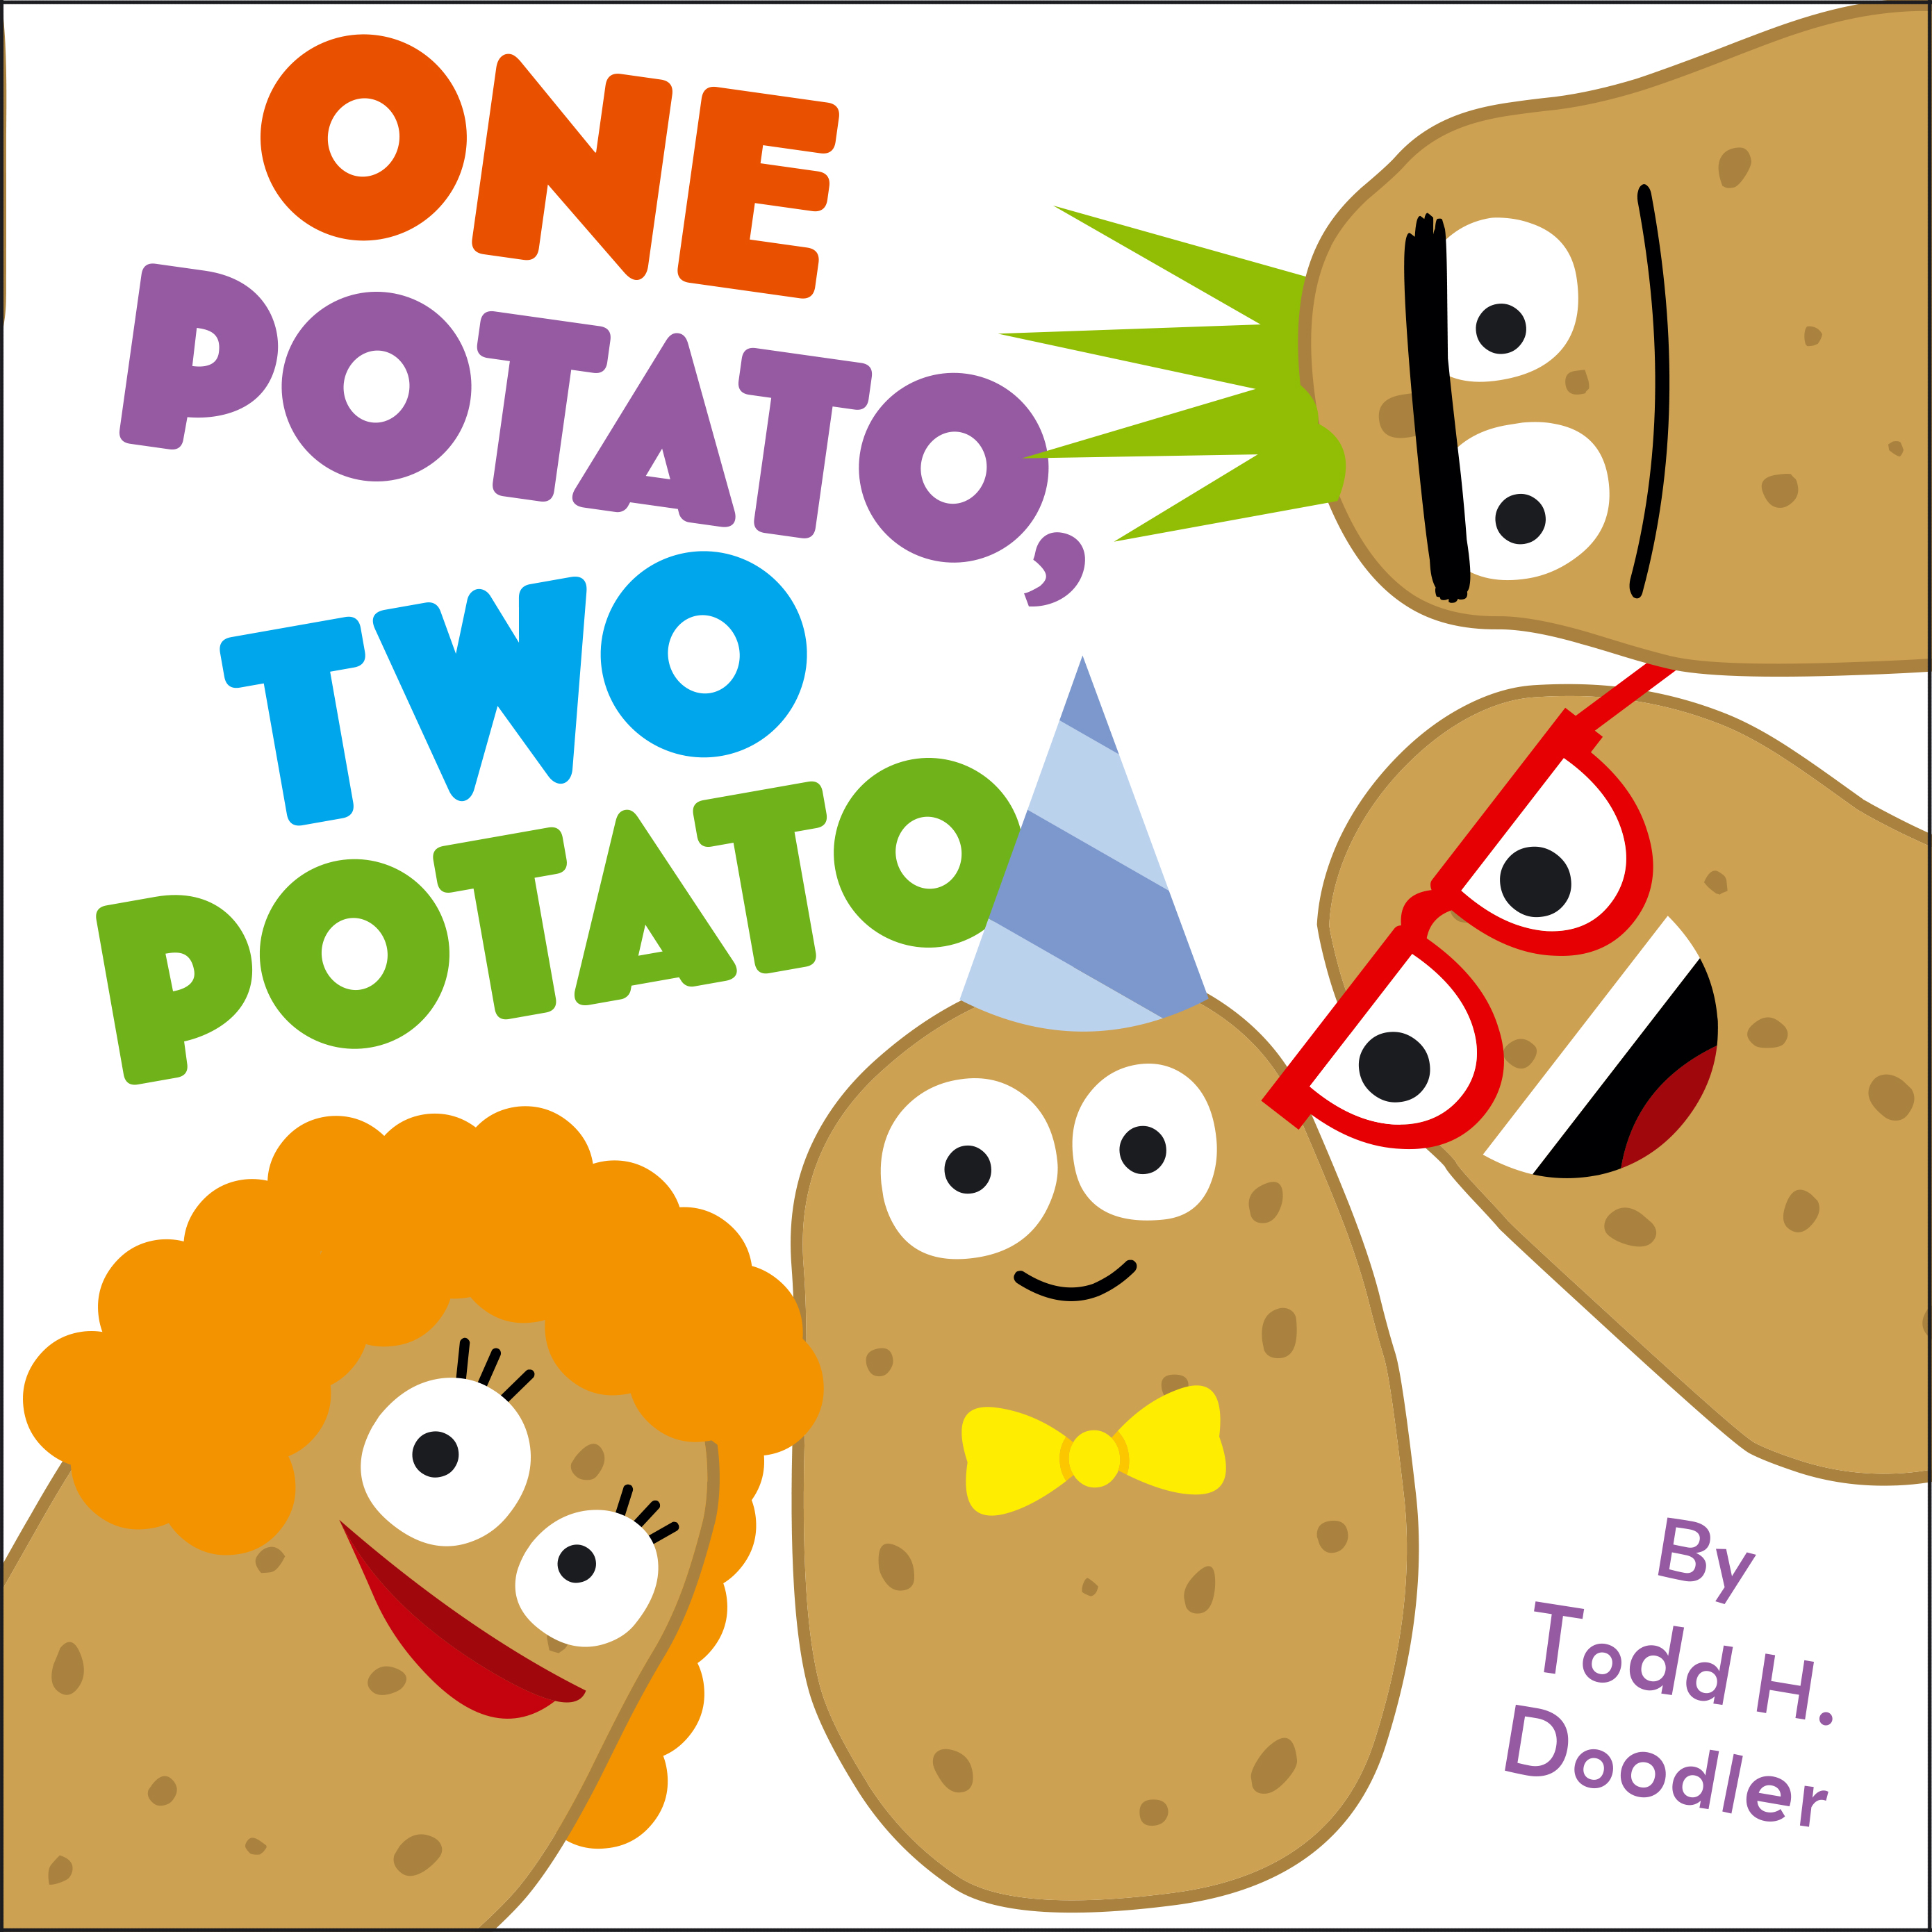 Potato clipart one potato two. Potatoes transparent png free